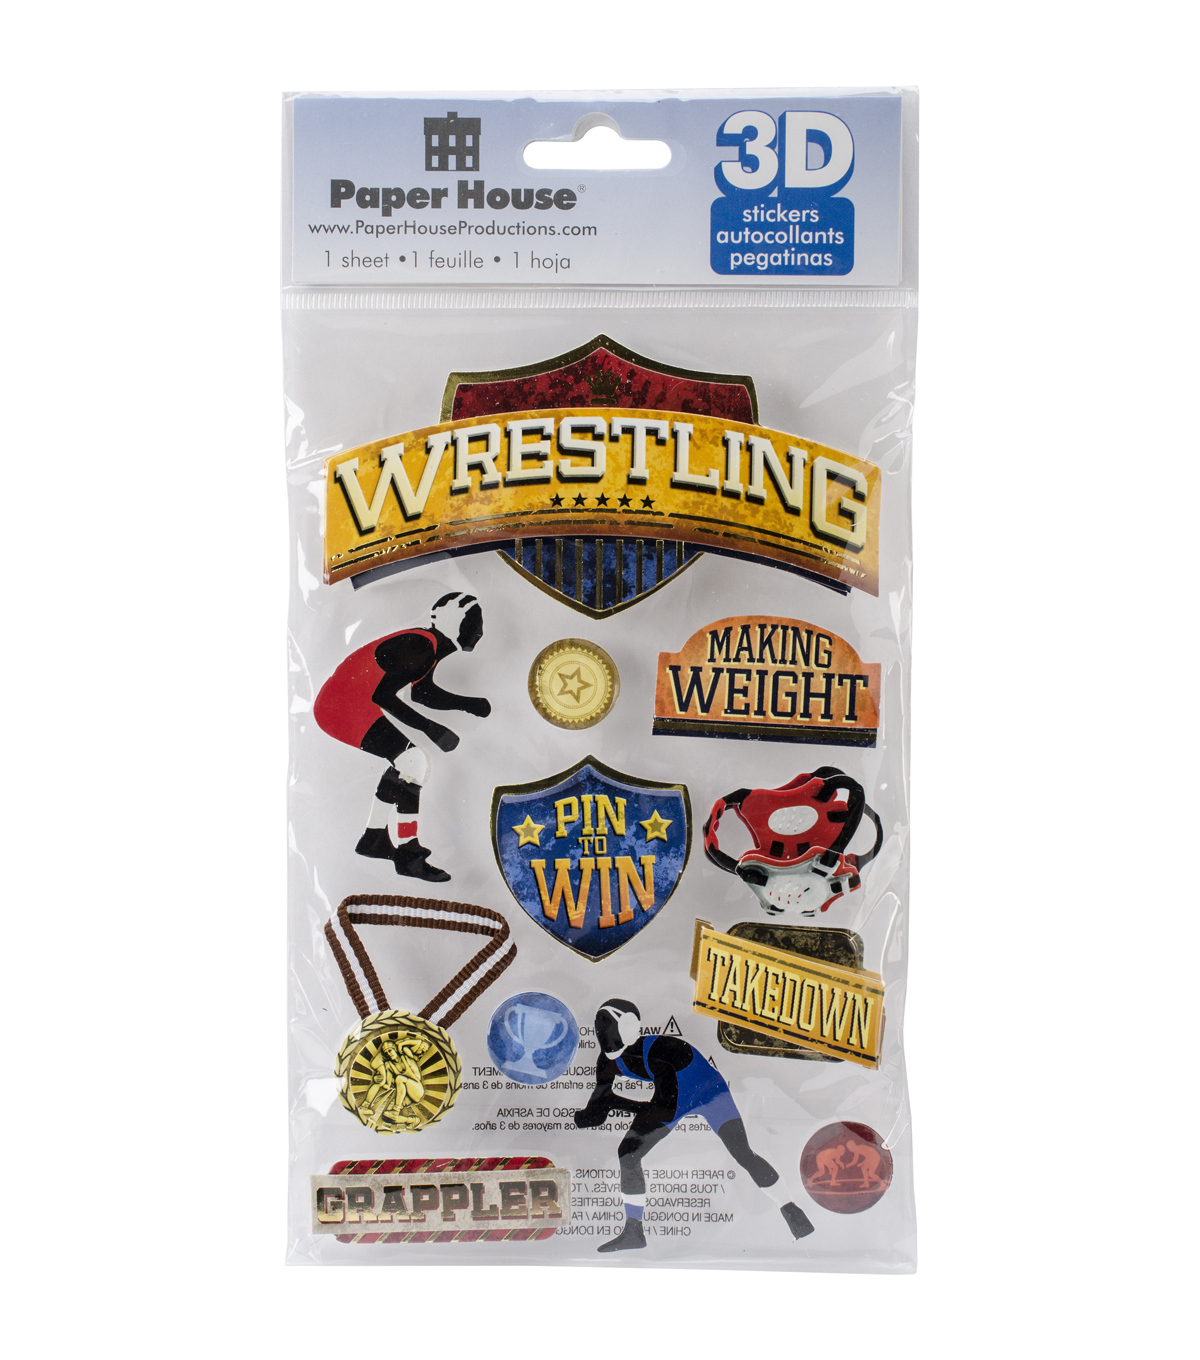 Paper House 3D Stickers-Wrestling